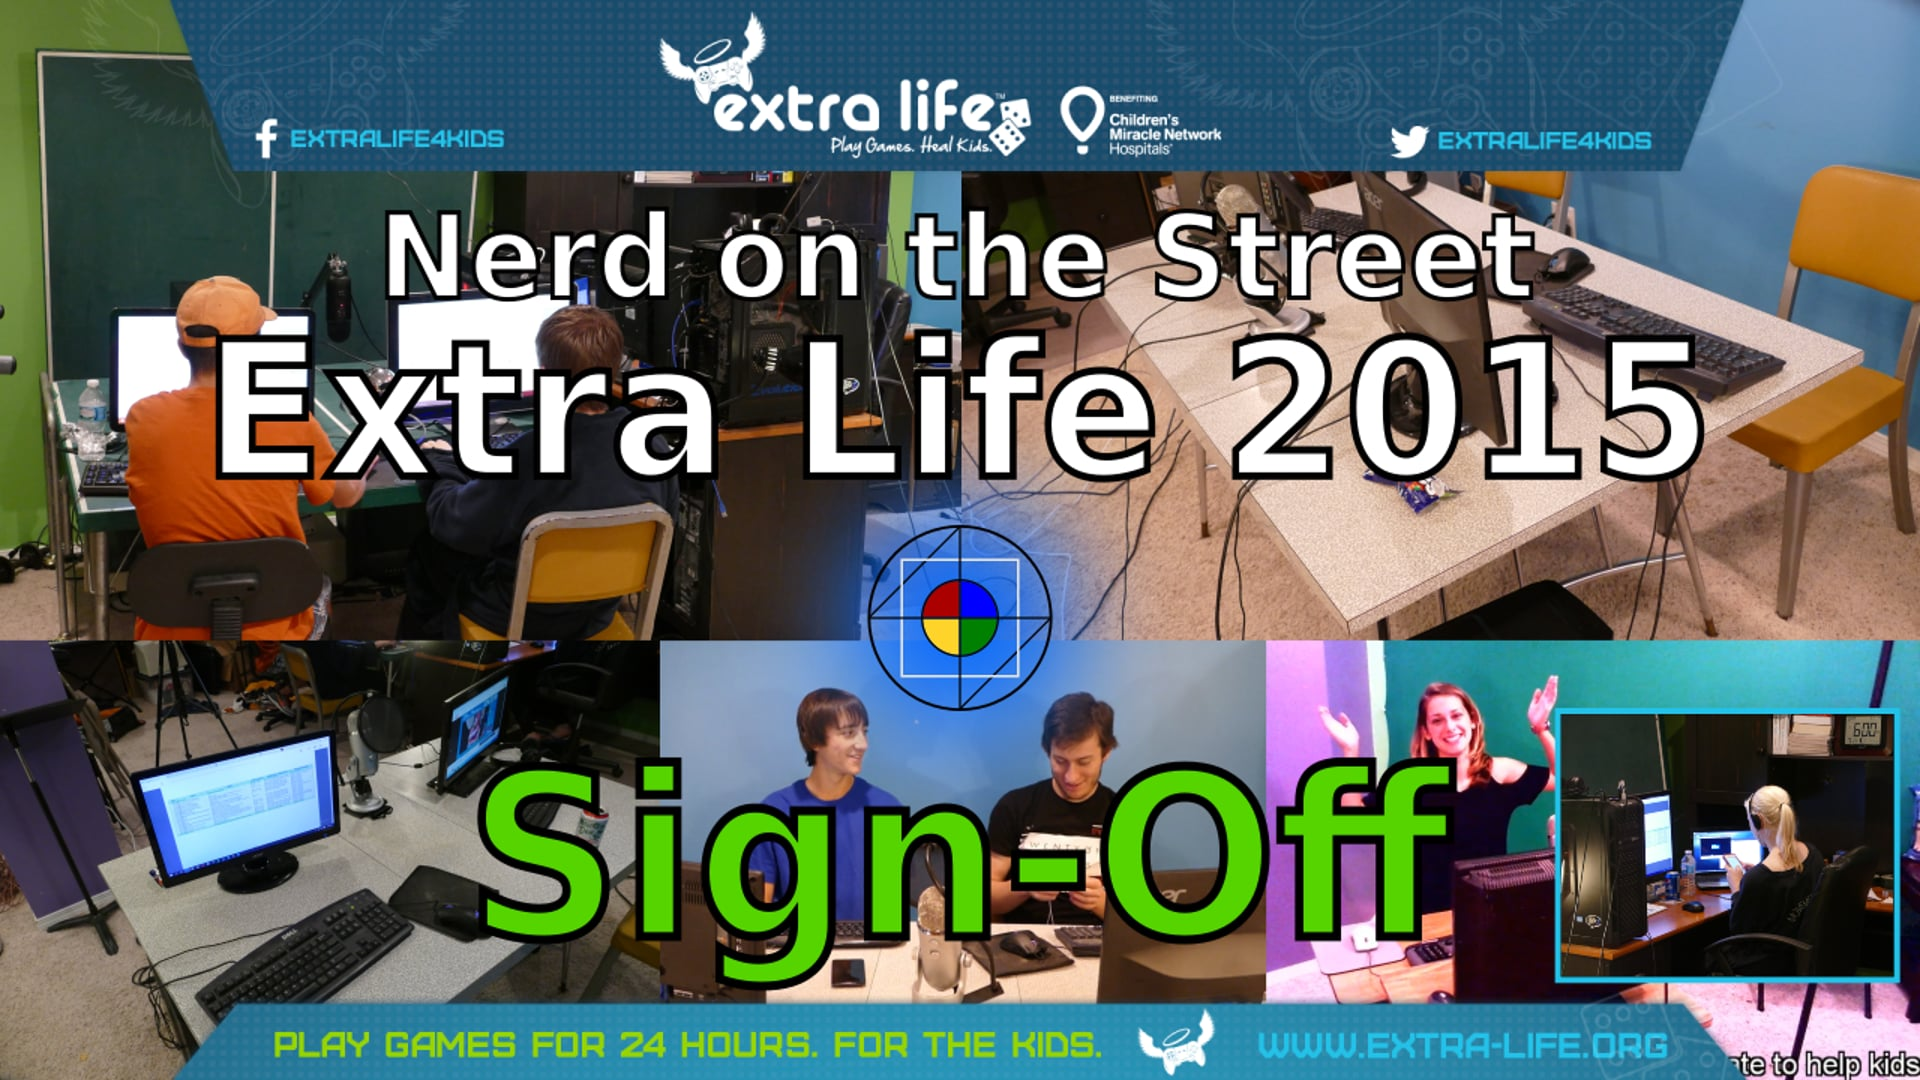 Extra Life 2015 Sign-off